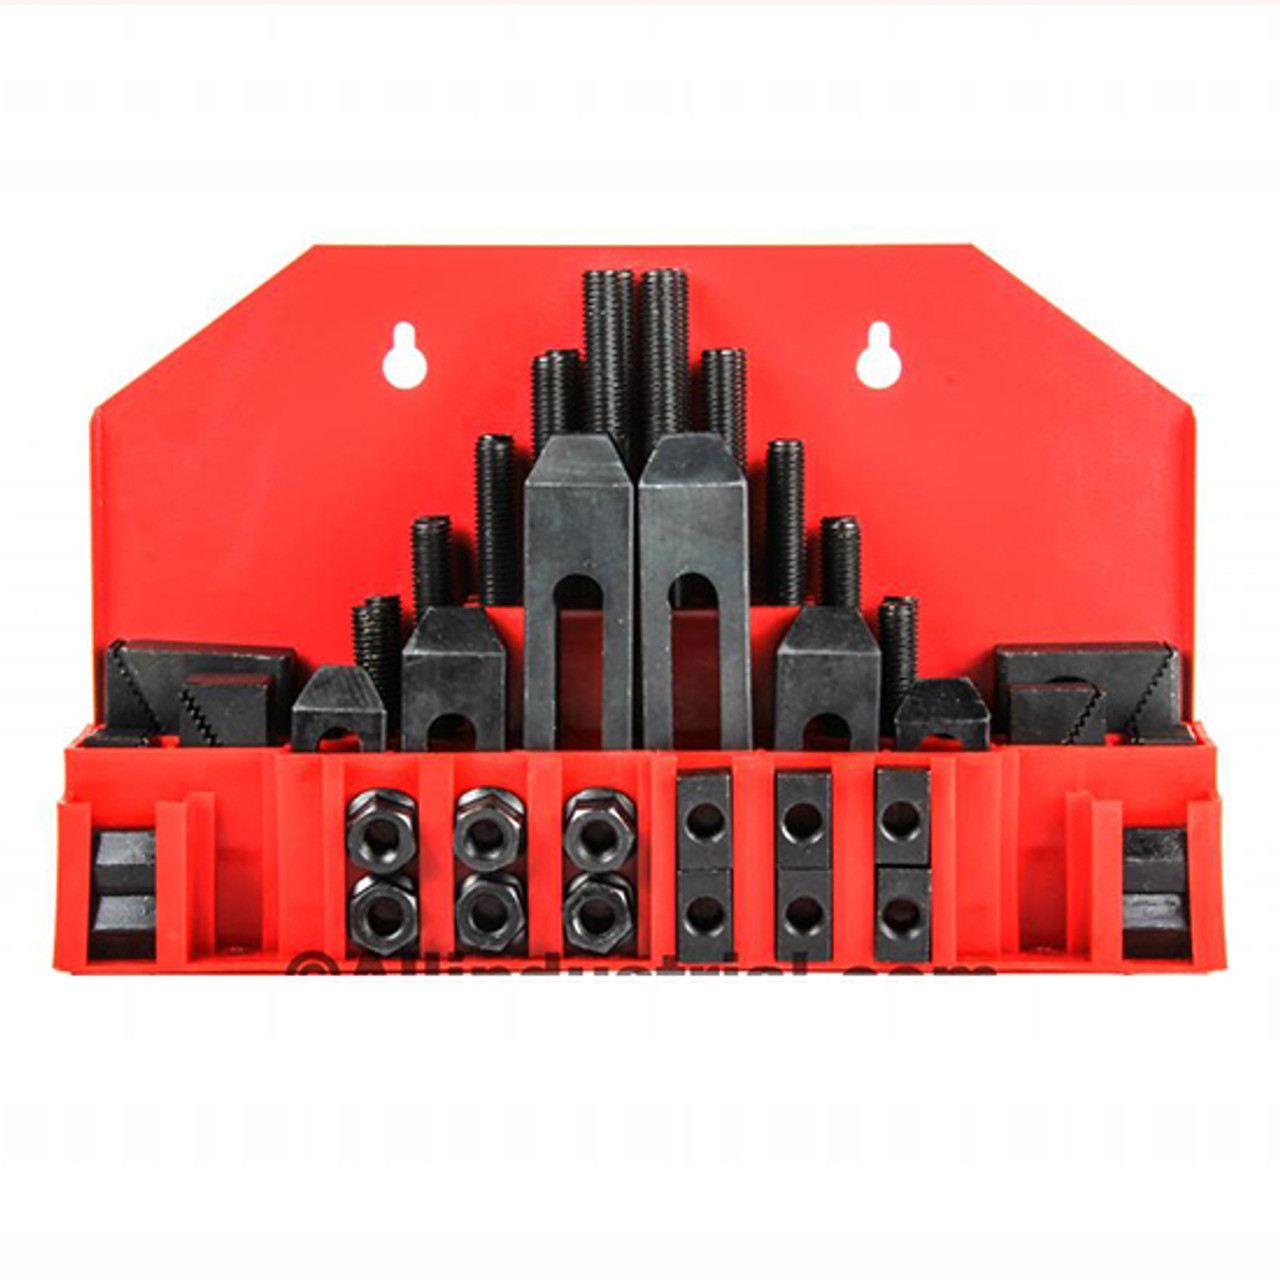 2 Pc 5//8/'/'  Adjustable T-Slot Hold Down Clamp 1//2/'/'-13 Clamping Range